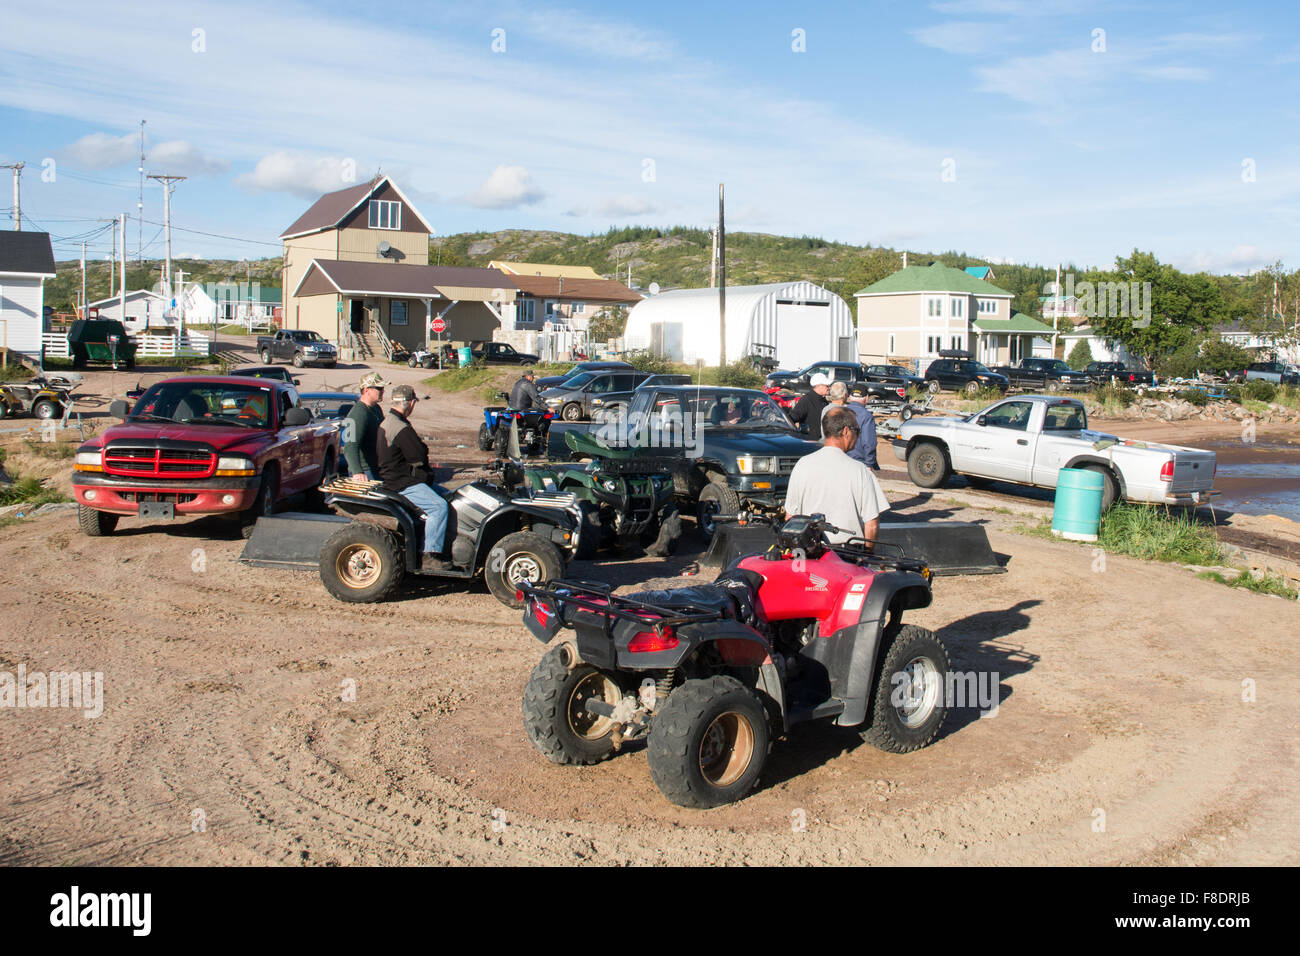 Men on quads in the village of St. Augustine, located on the Gulf of St. Lawrence, Lower North Shore region, Quebec, - Stock Image